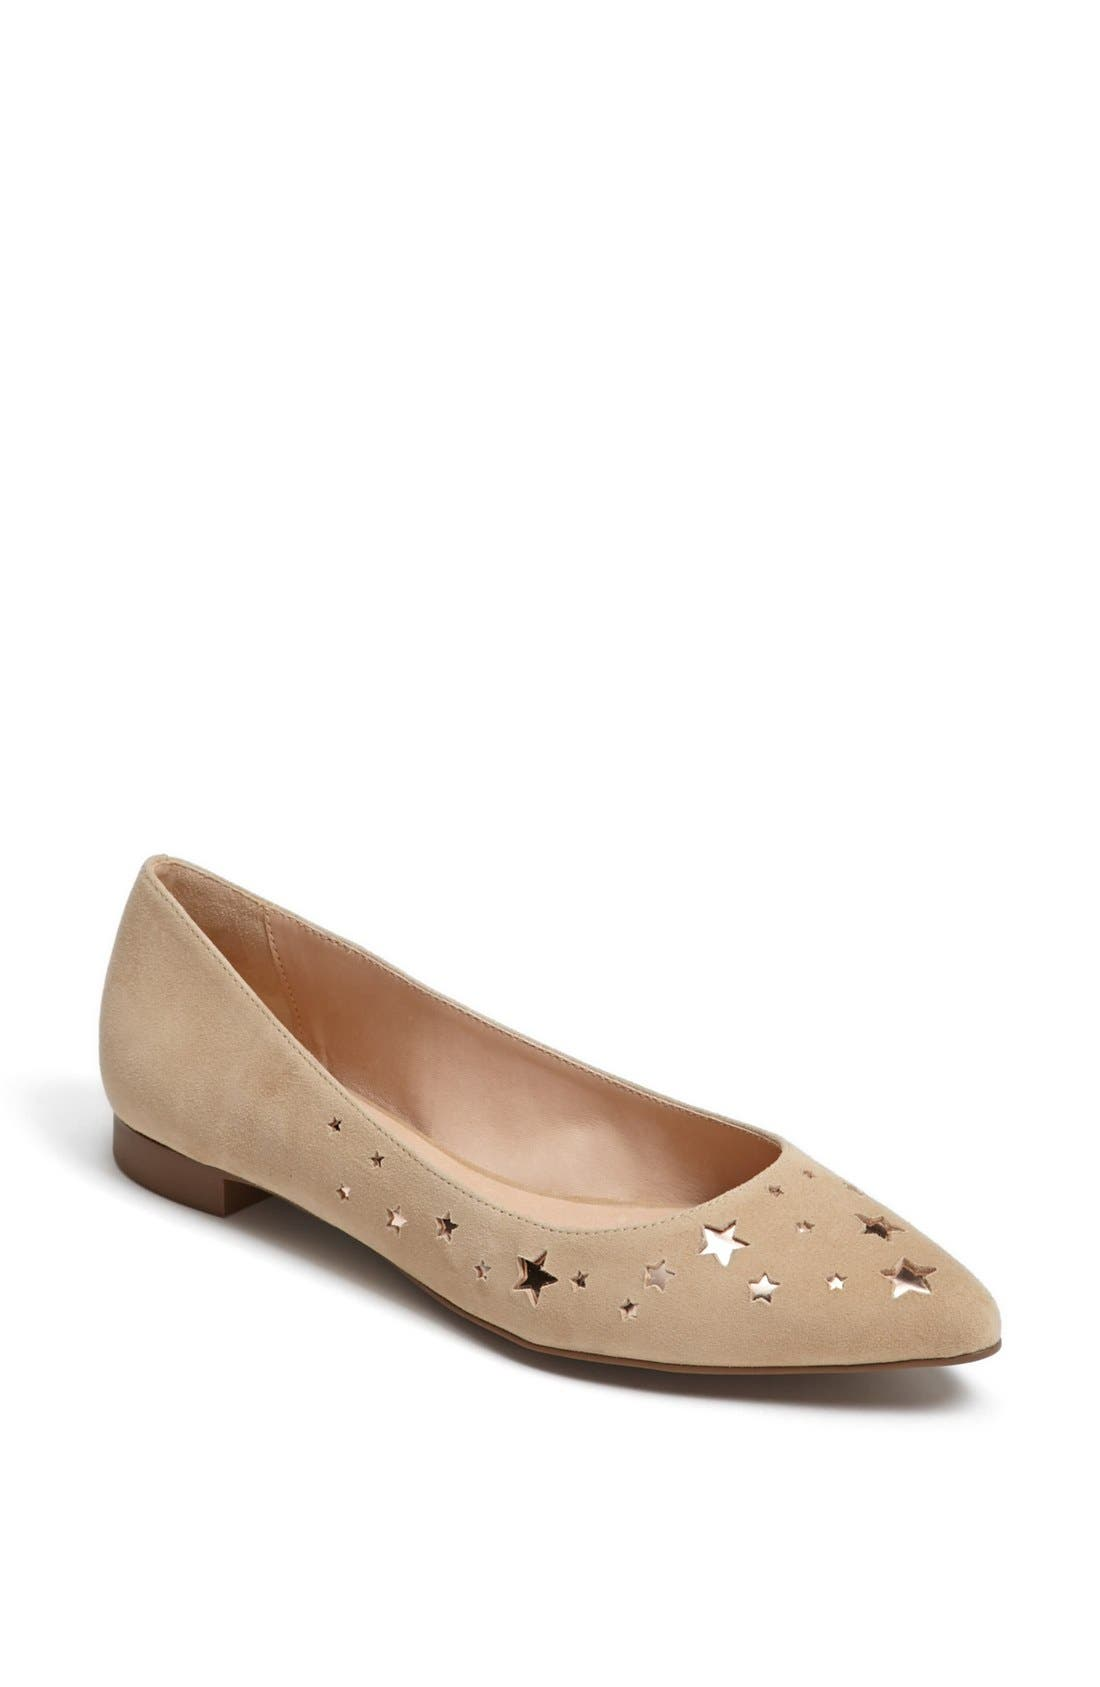 Alternate Image 1 Selected - kate spade new york 'evennie' flat